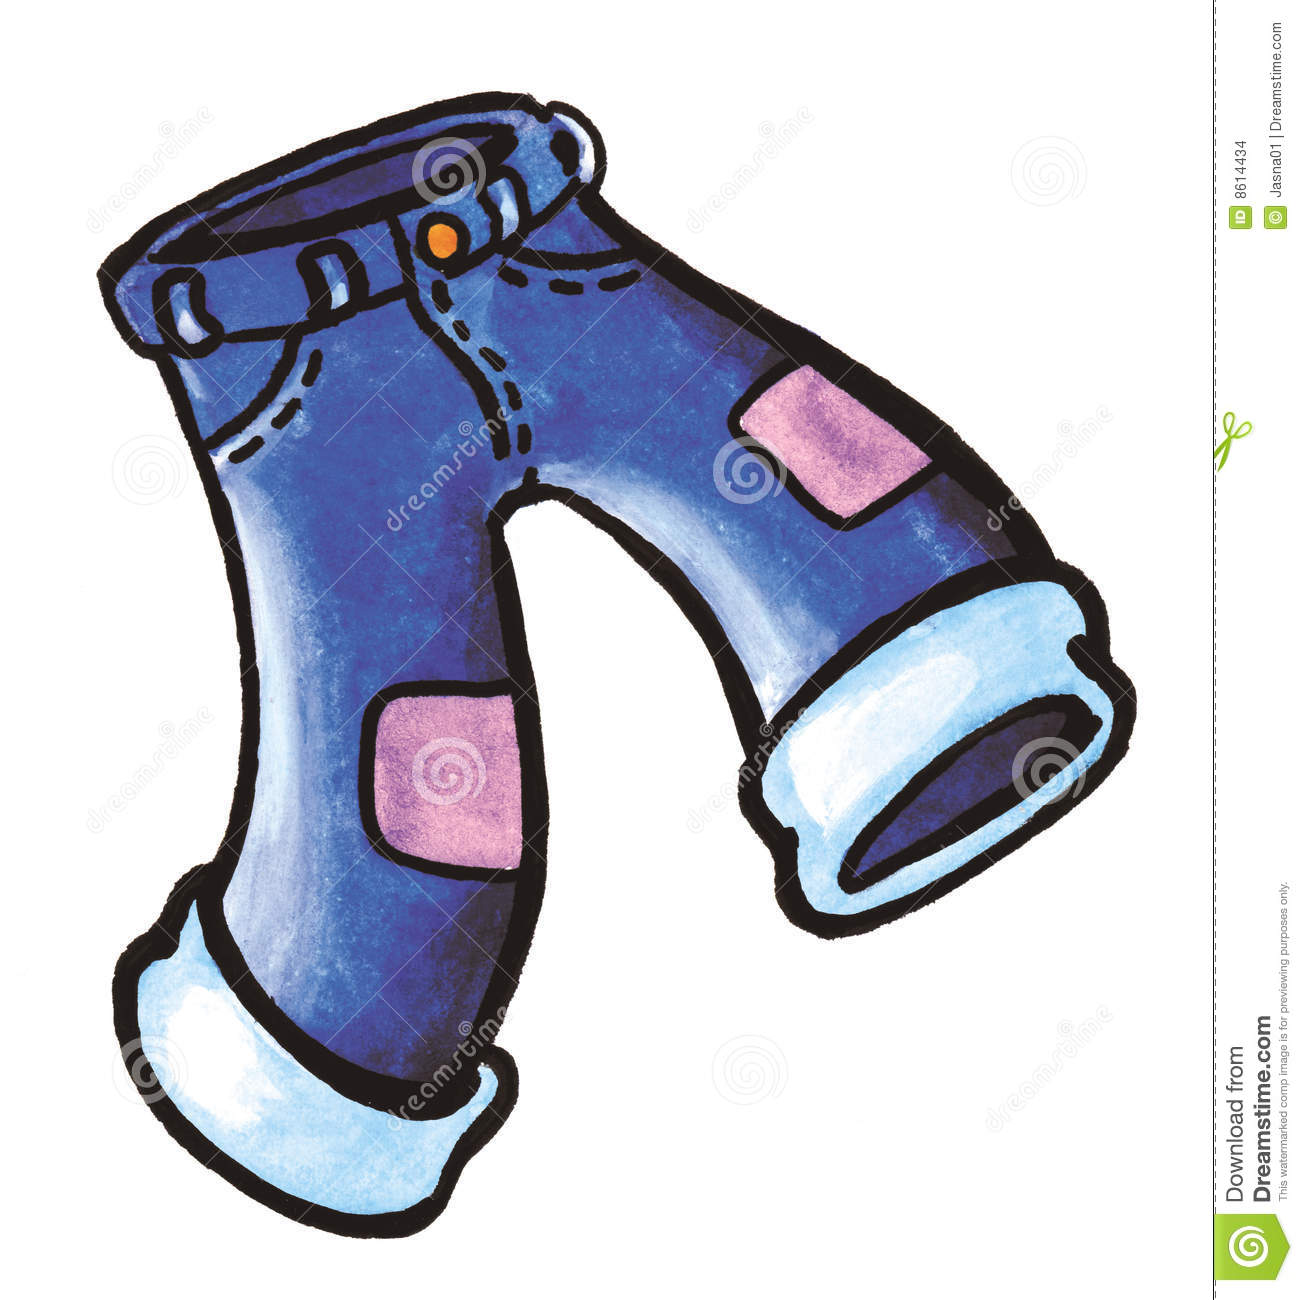 Trousers clipart #2